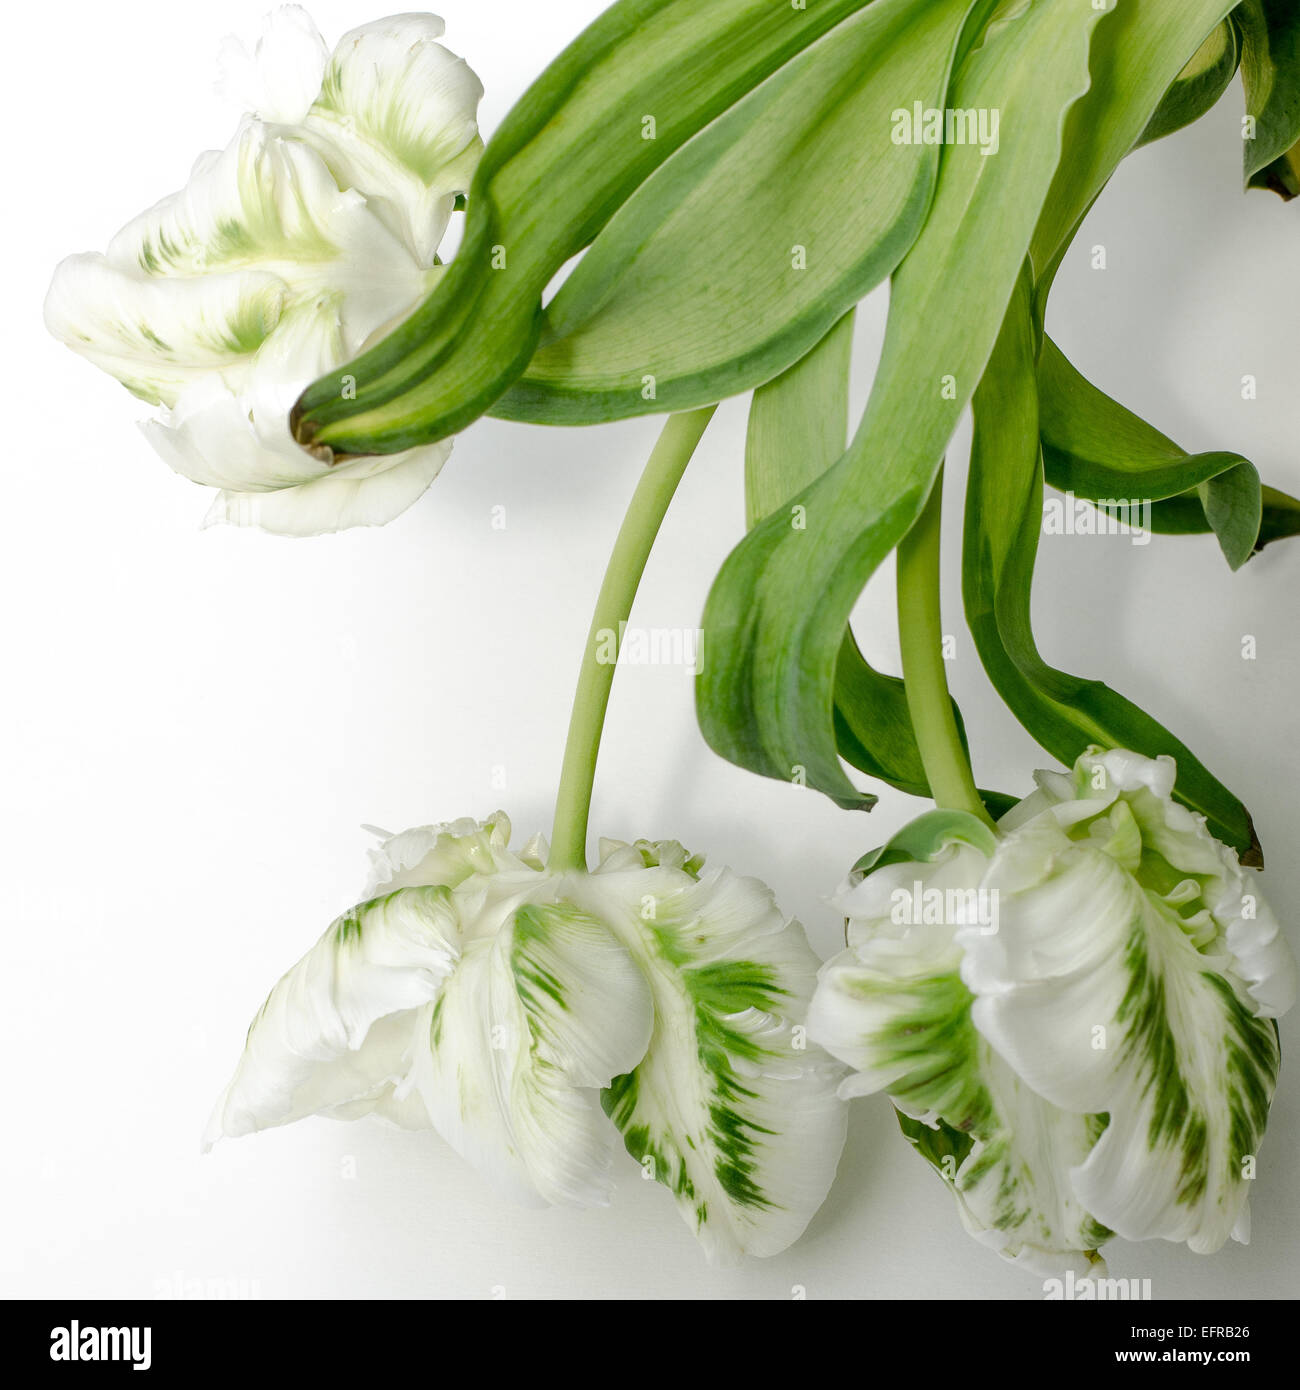 Falling Leaves Live Wallpaper Parrot Tulips White And Green Stock Photo Royalty Free